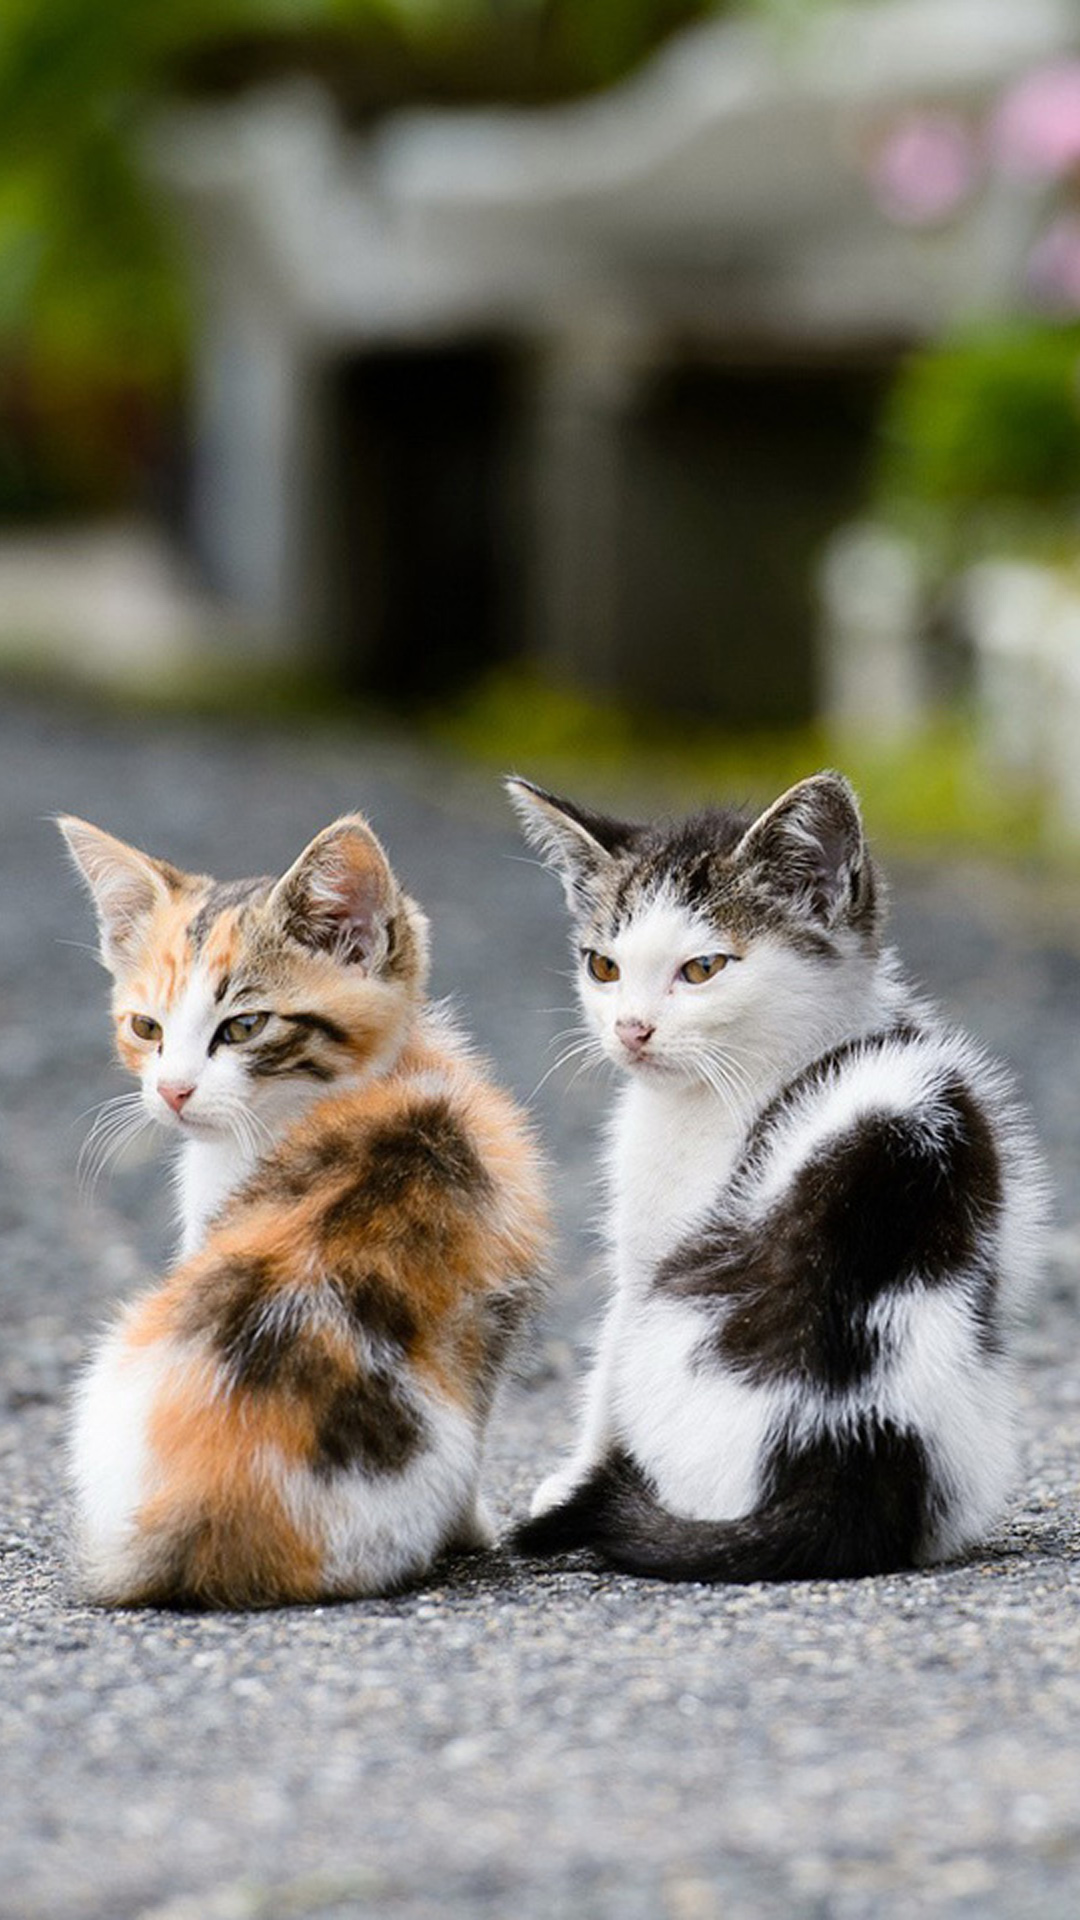 Two Very Cute Cats Android Wallpaper Android Hd Wallpapers